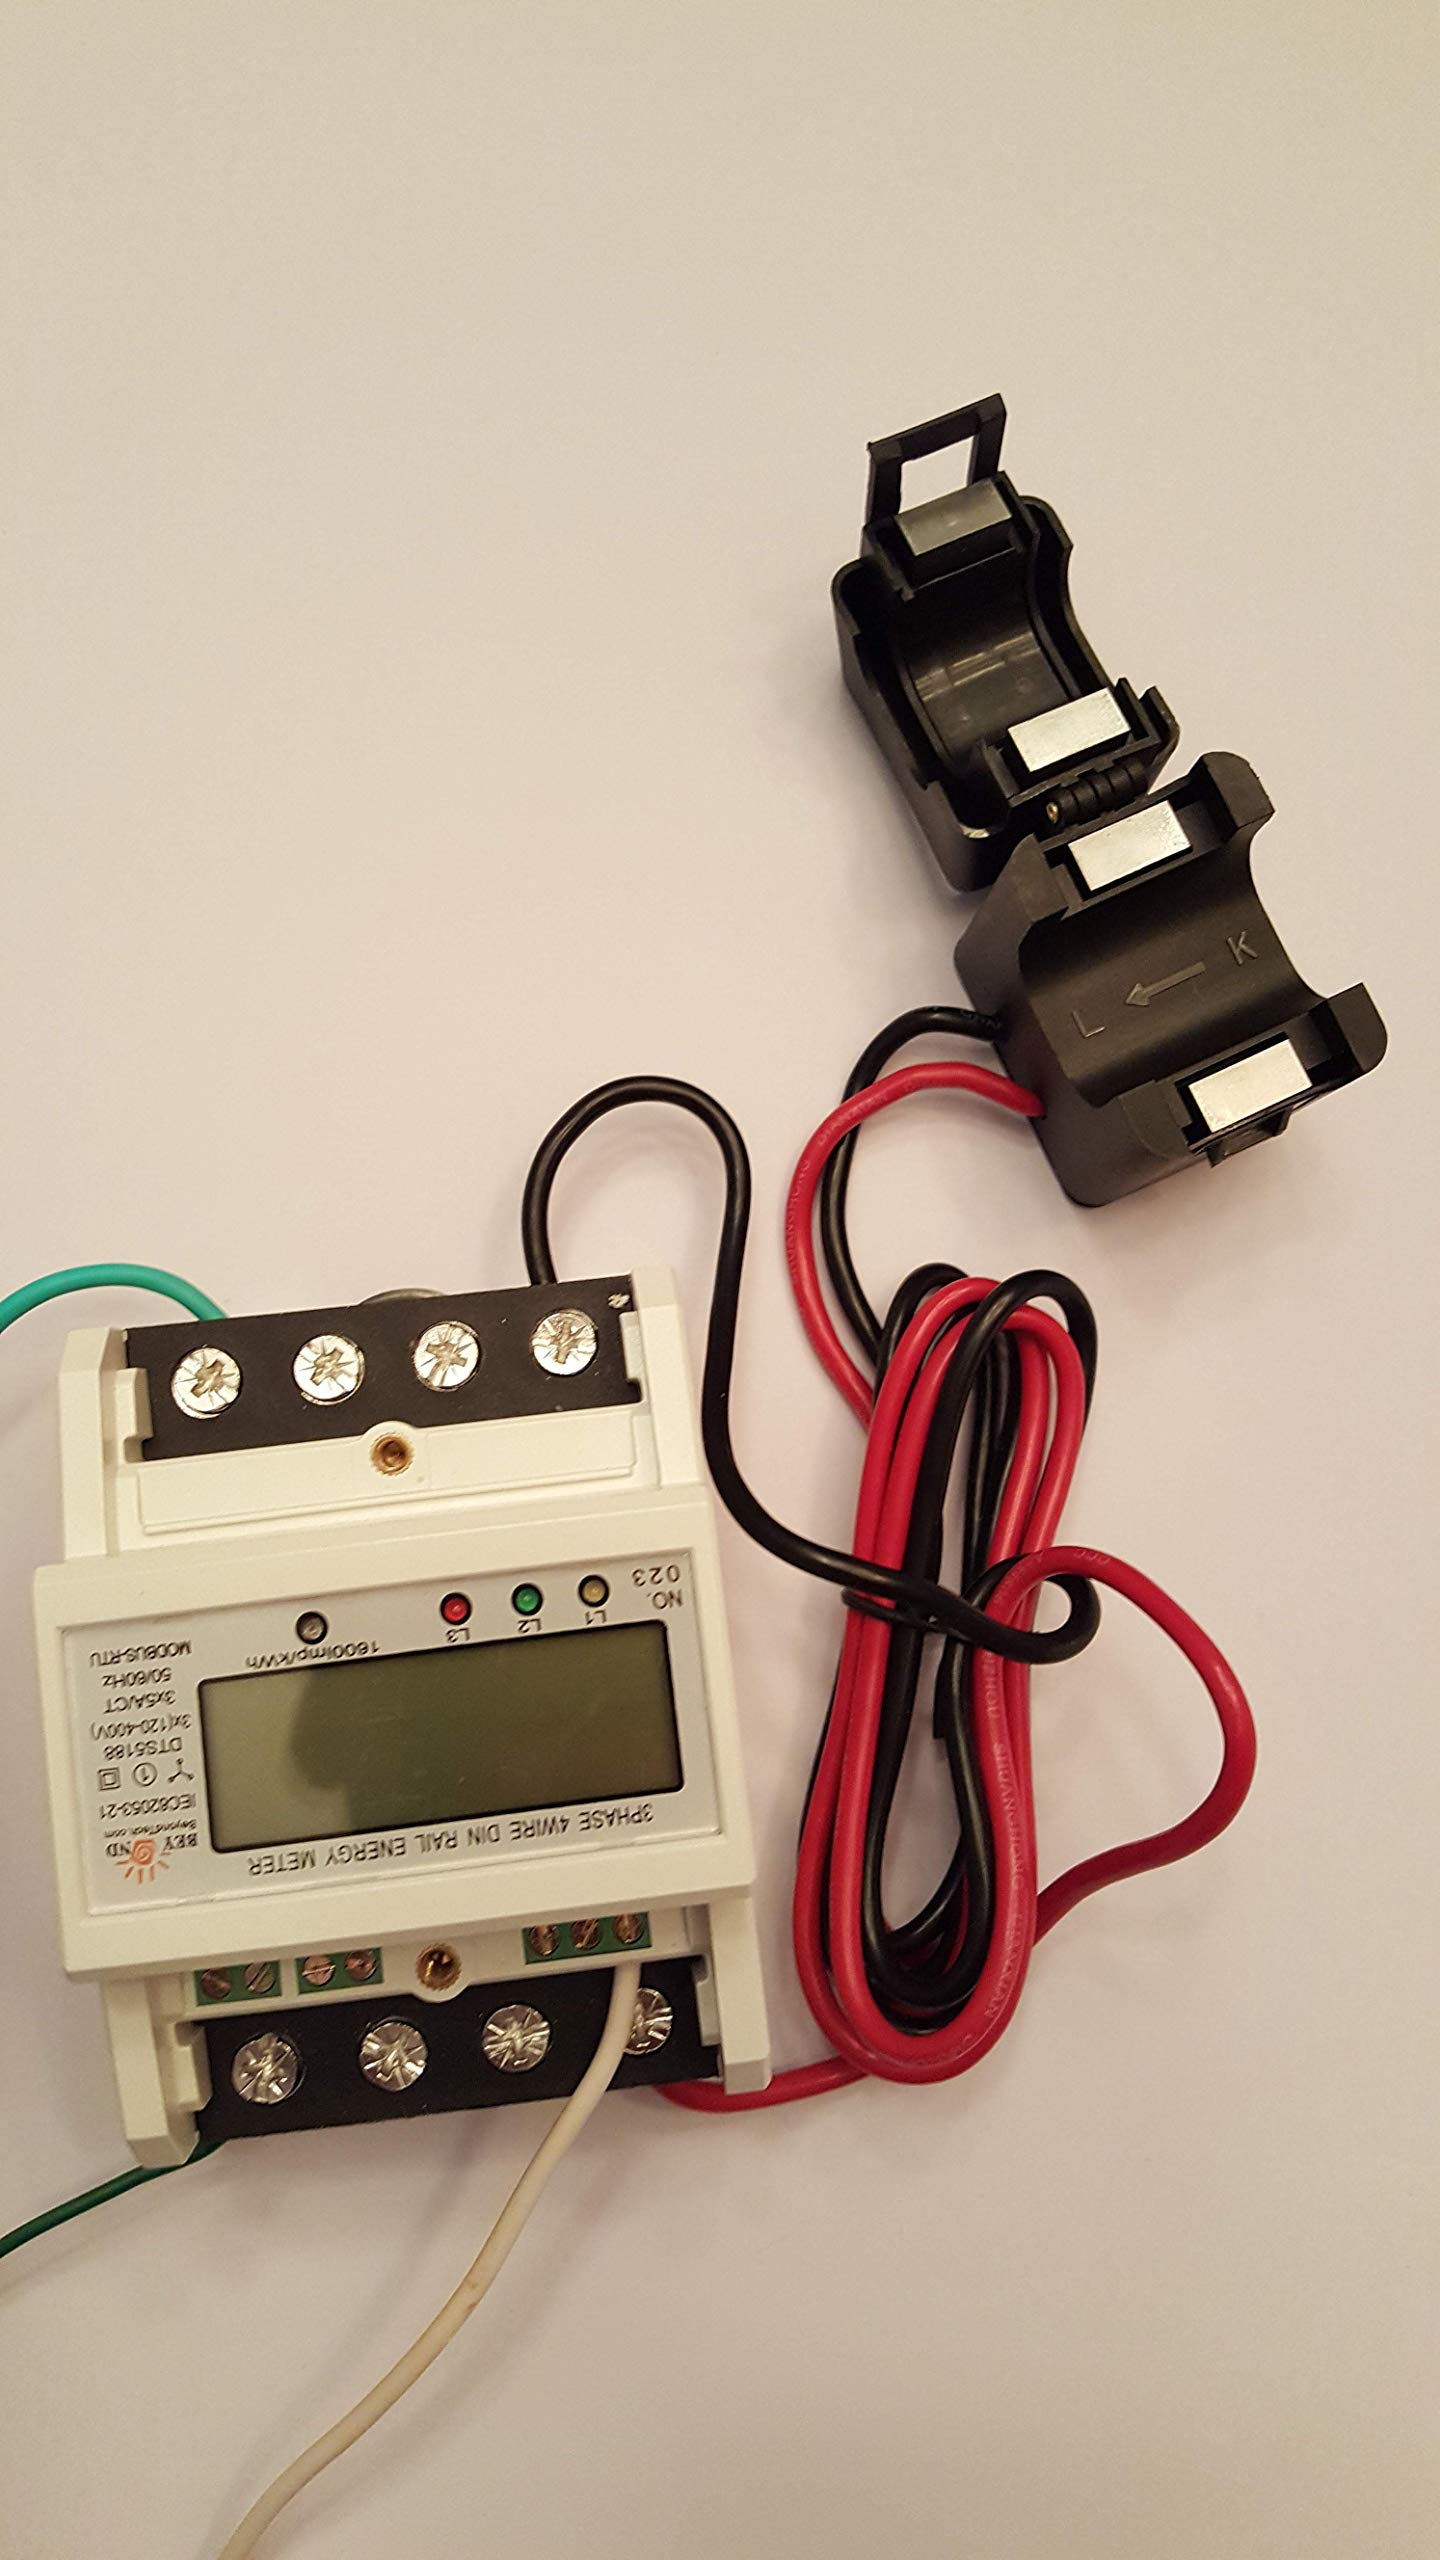 Smart energy meter 1 2 or 3 phase 120V/480V. 2x200:5 Amps included by BeyondTech.com (Image #3)